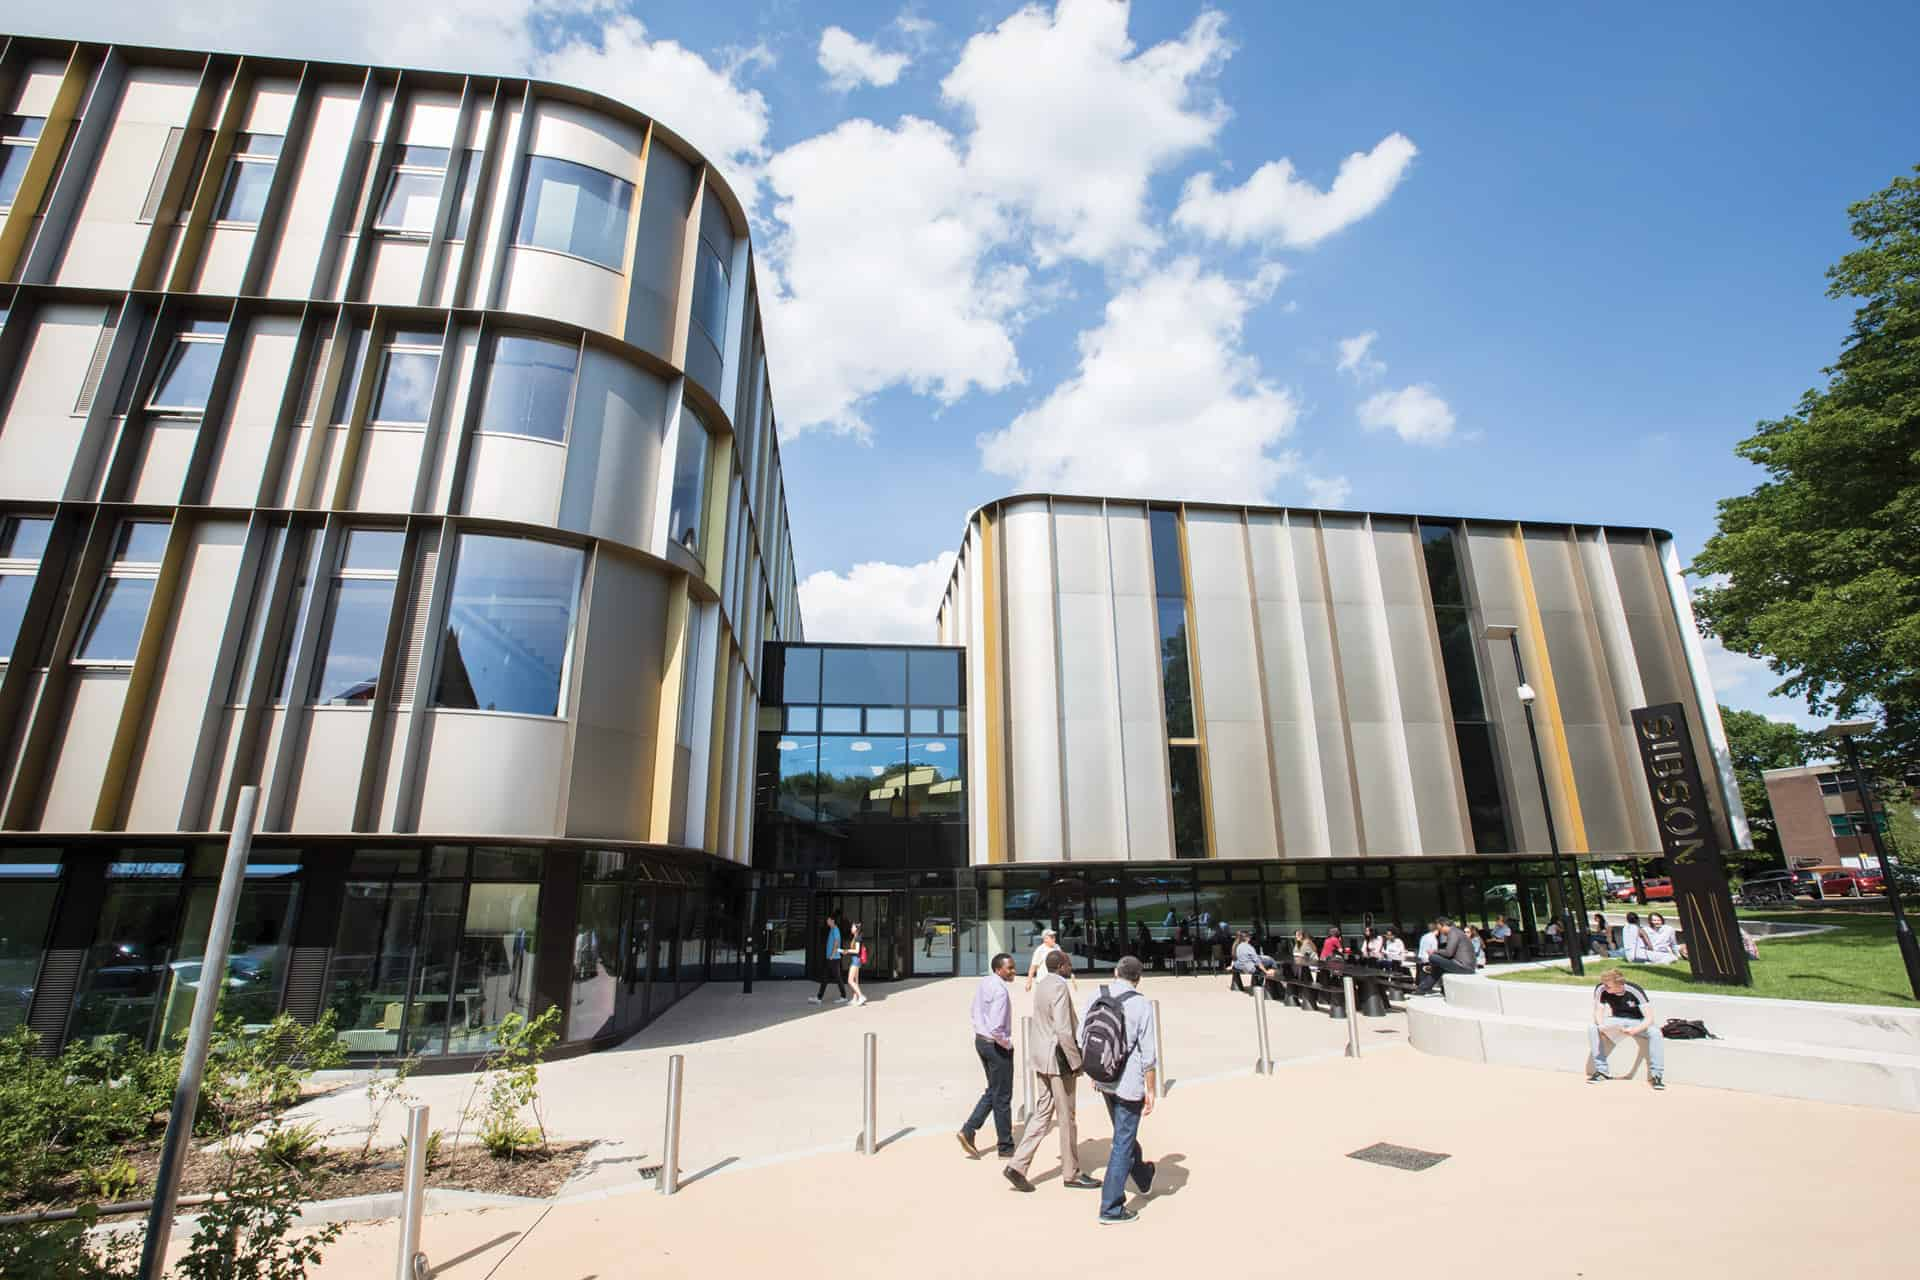 Maths at the University of Kent – Studying in the School of Mathematics, Statistics and Actuarial Science